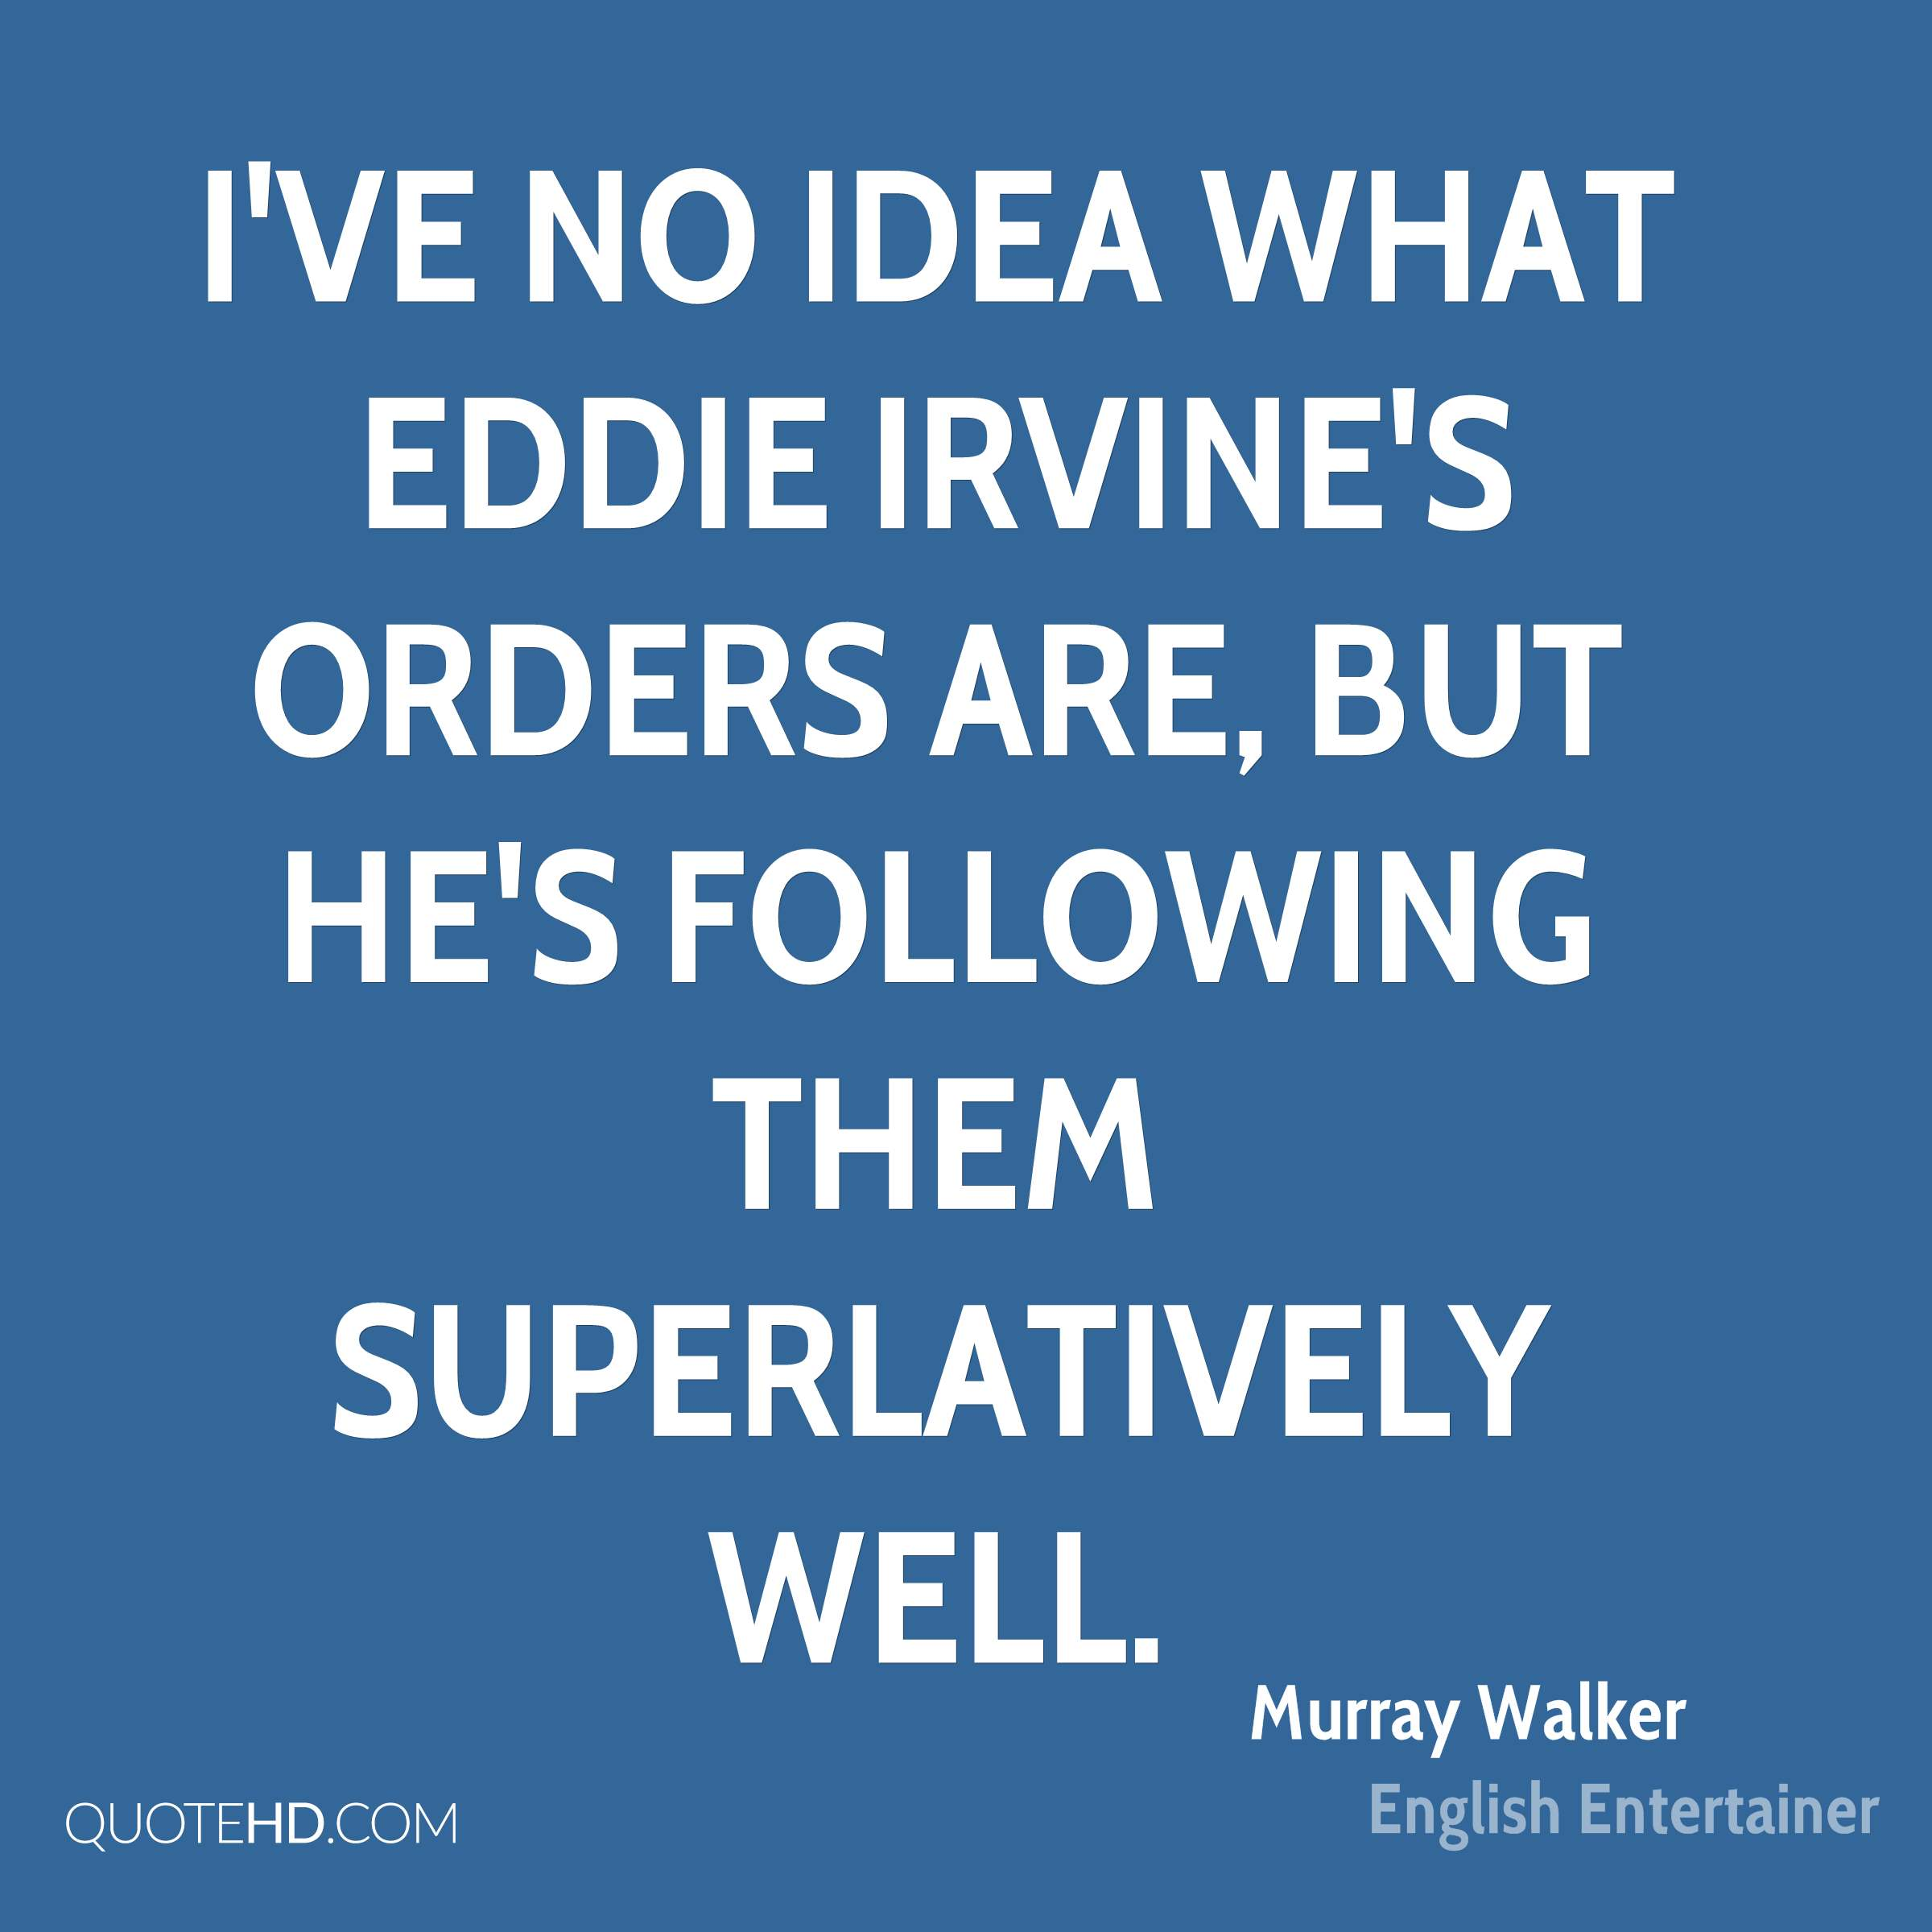 I've no idea what Eddie Irvine's orders are, but he's following them superlatively well.